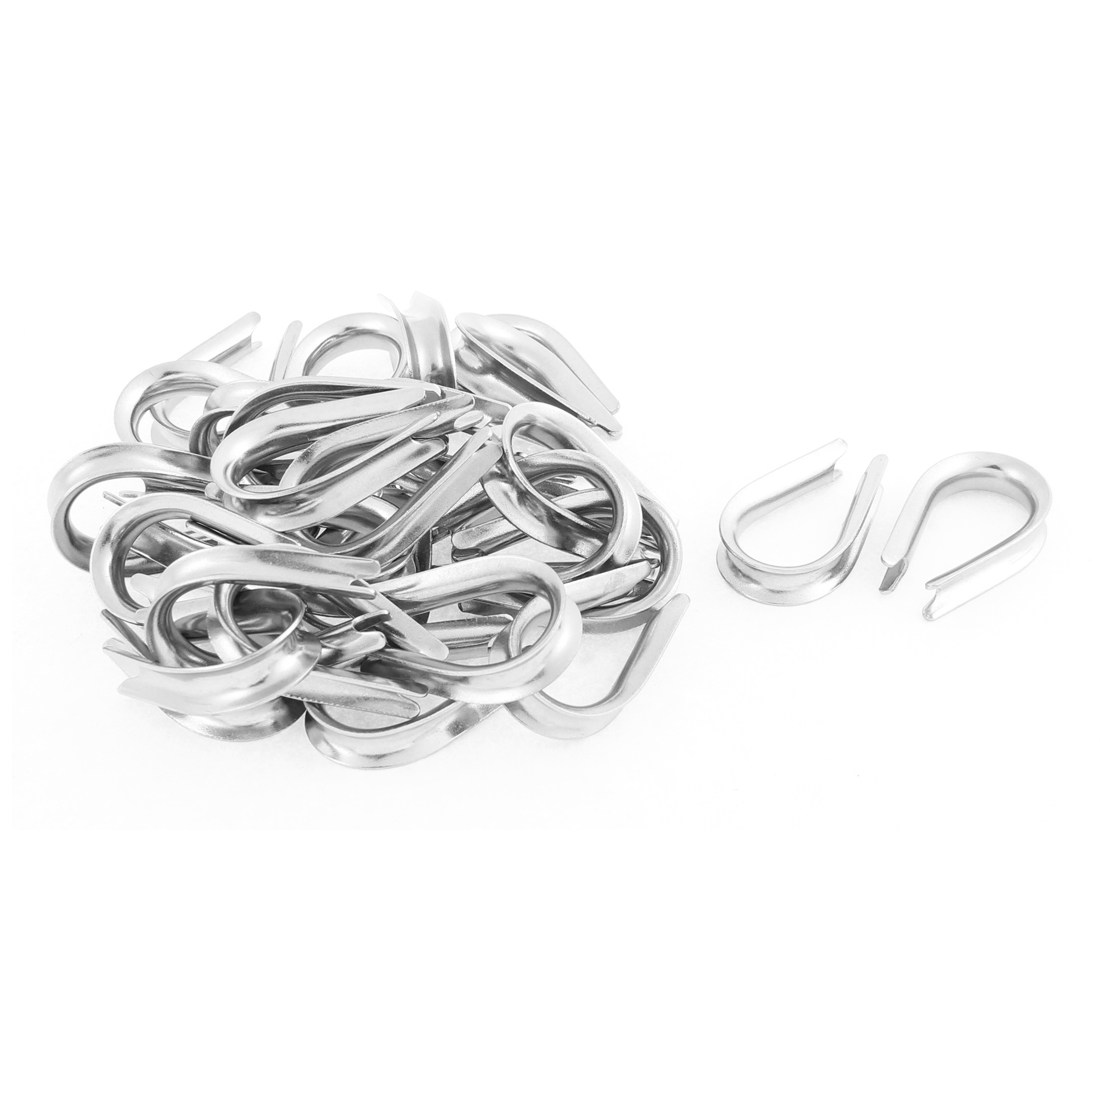 Stainless Steel 6mm Standard Wire Rope Cable Thimbles Silver Tone 30pcs